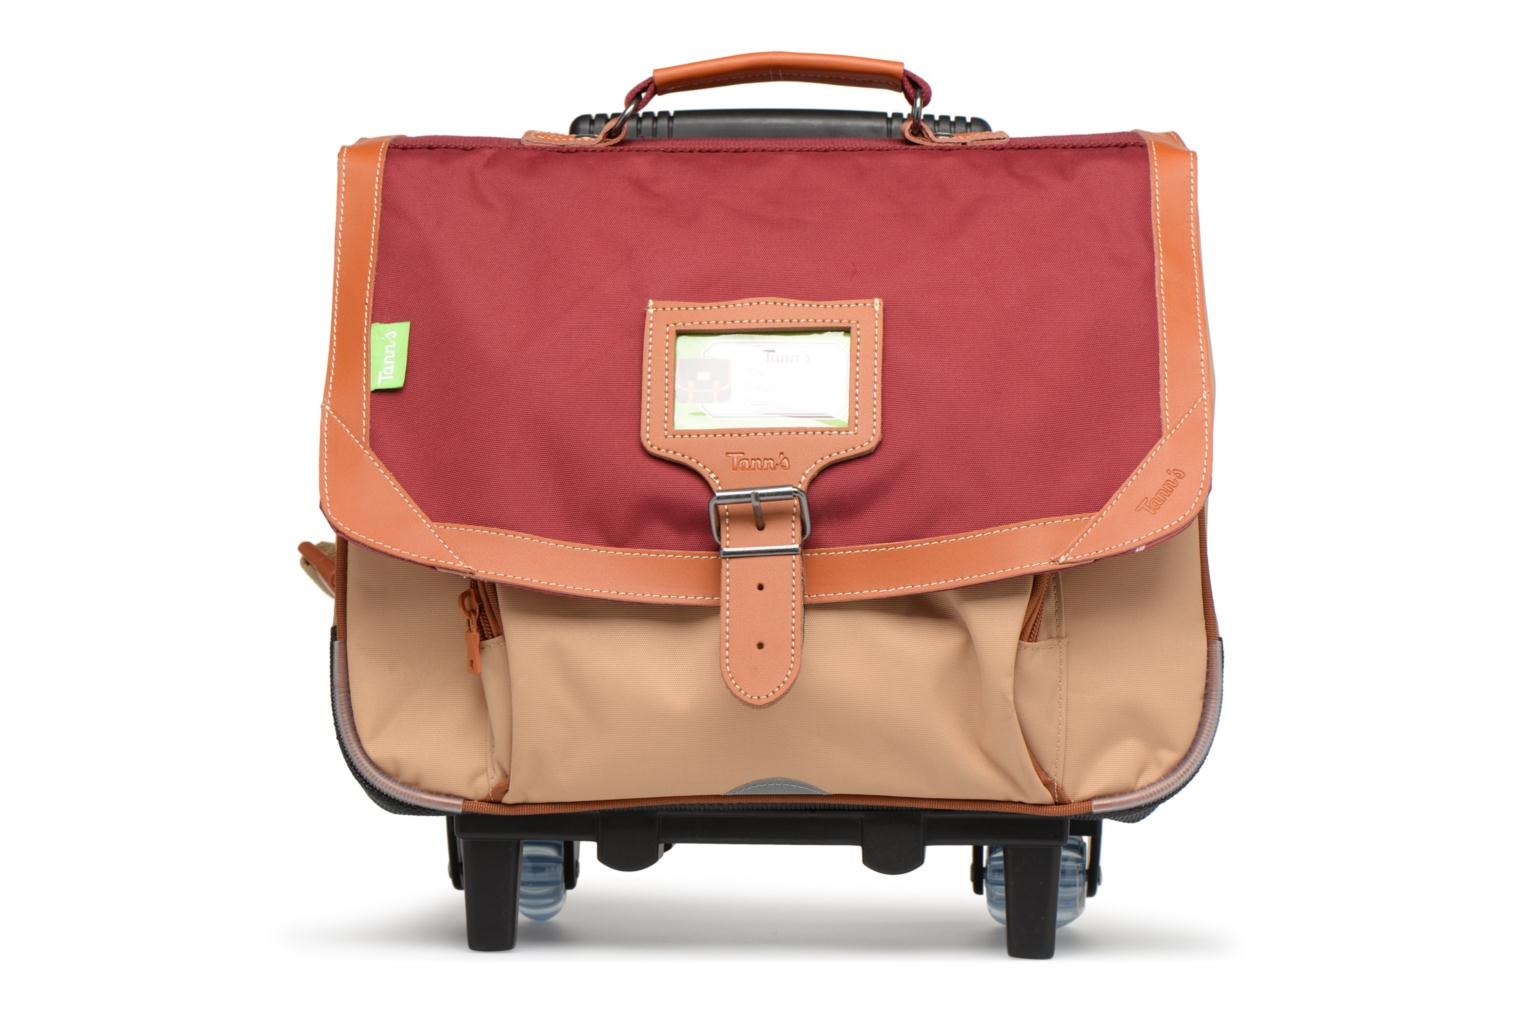 Tann's Grenat Sable Trolley Iconic 38cm 4wXx4